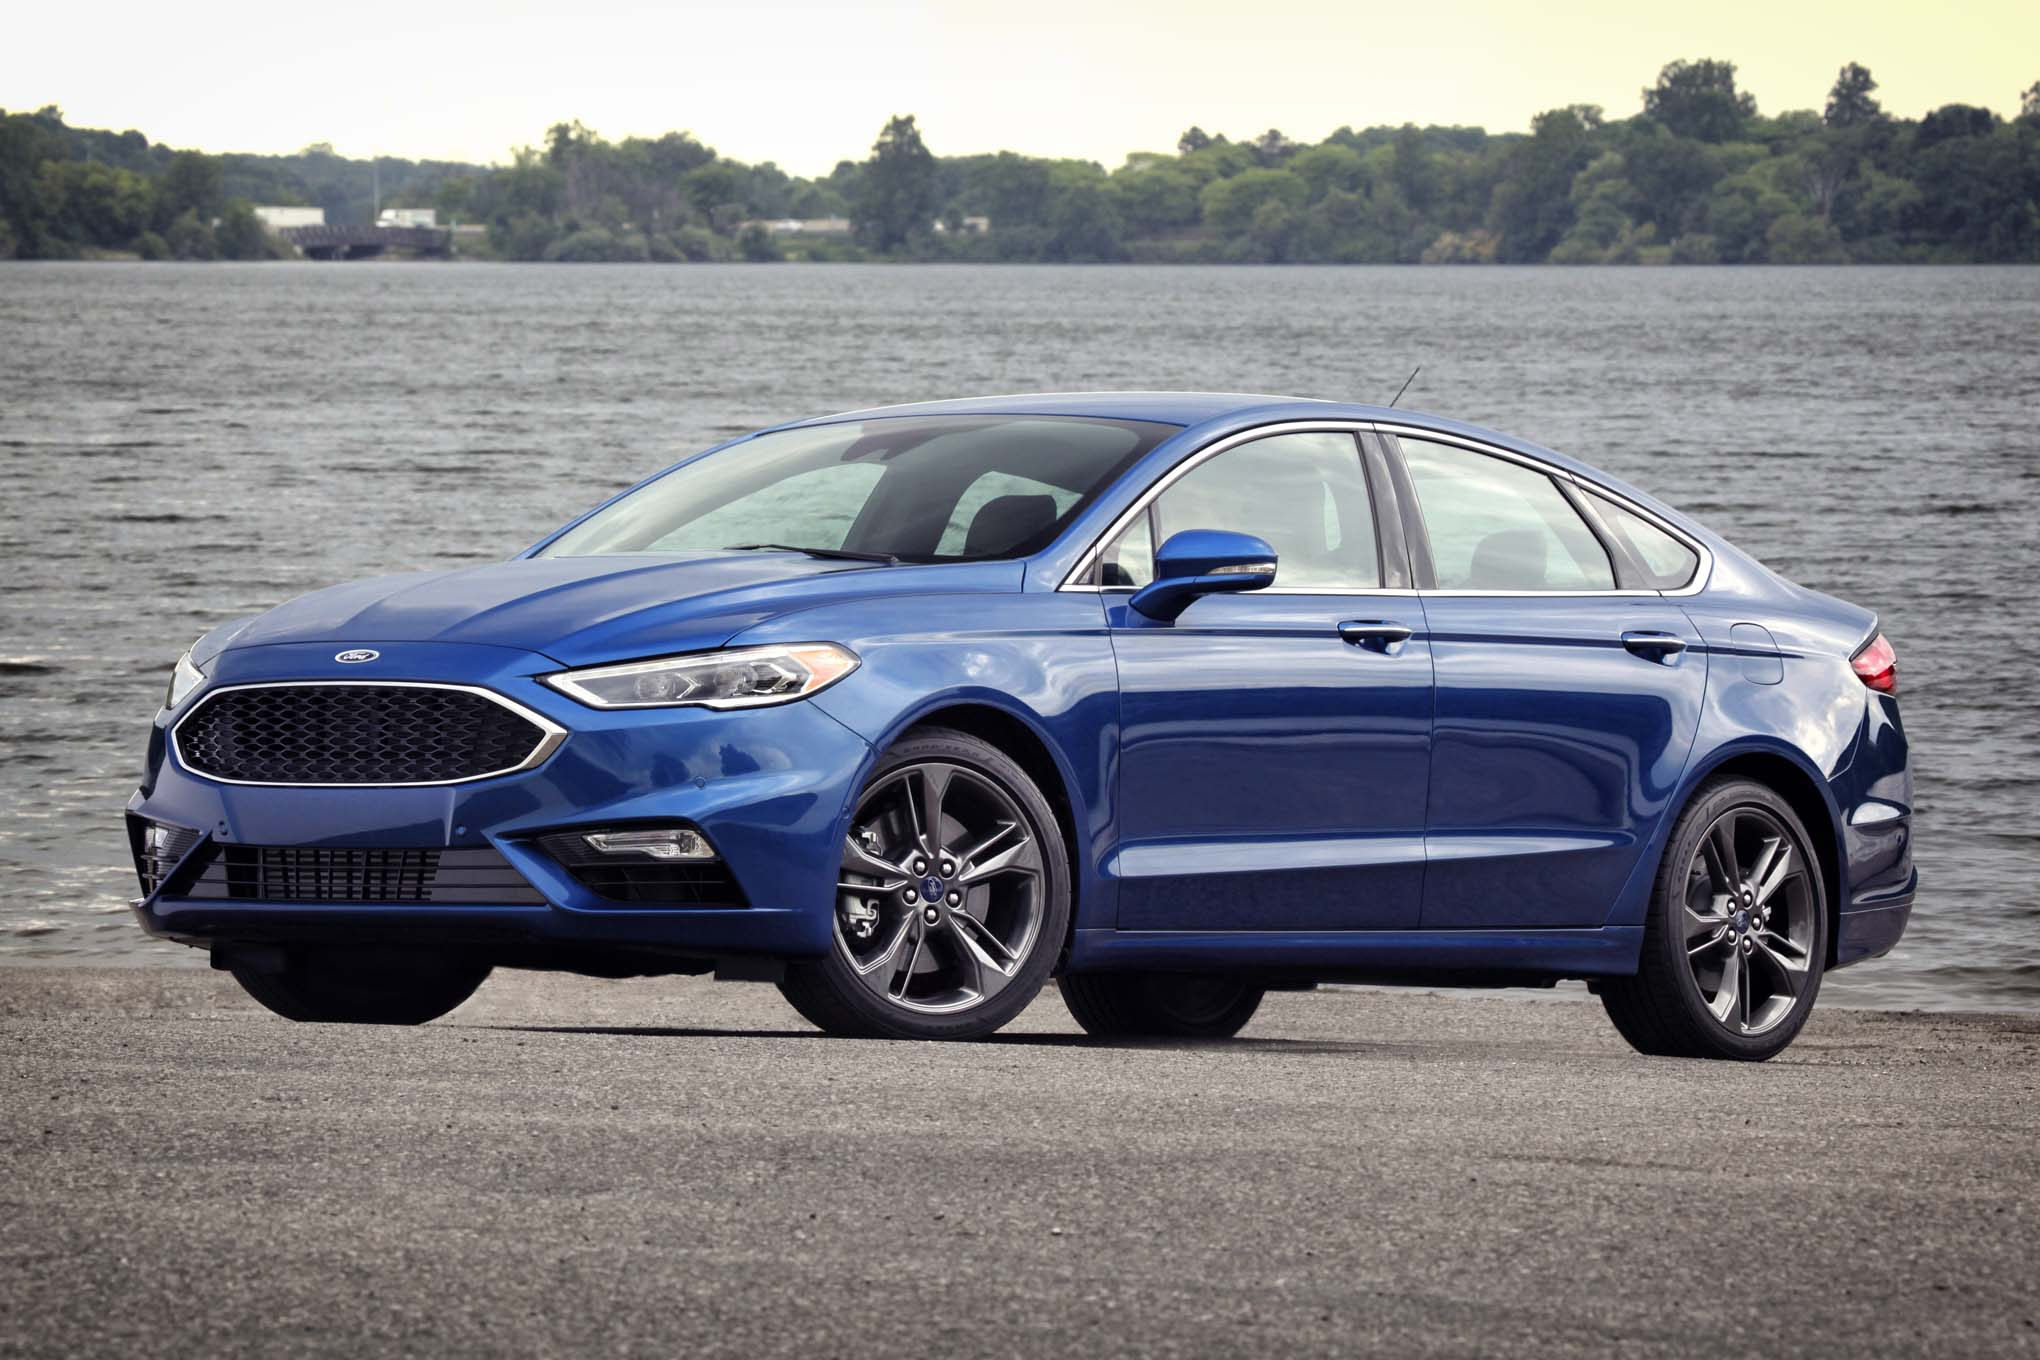 2017 Ford Fusion Sport front three quarter 2017 ford fusion review 2016 ford fusion wiring diagram at fashall.co